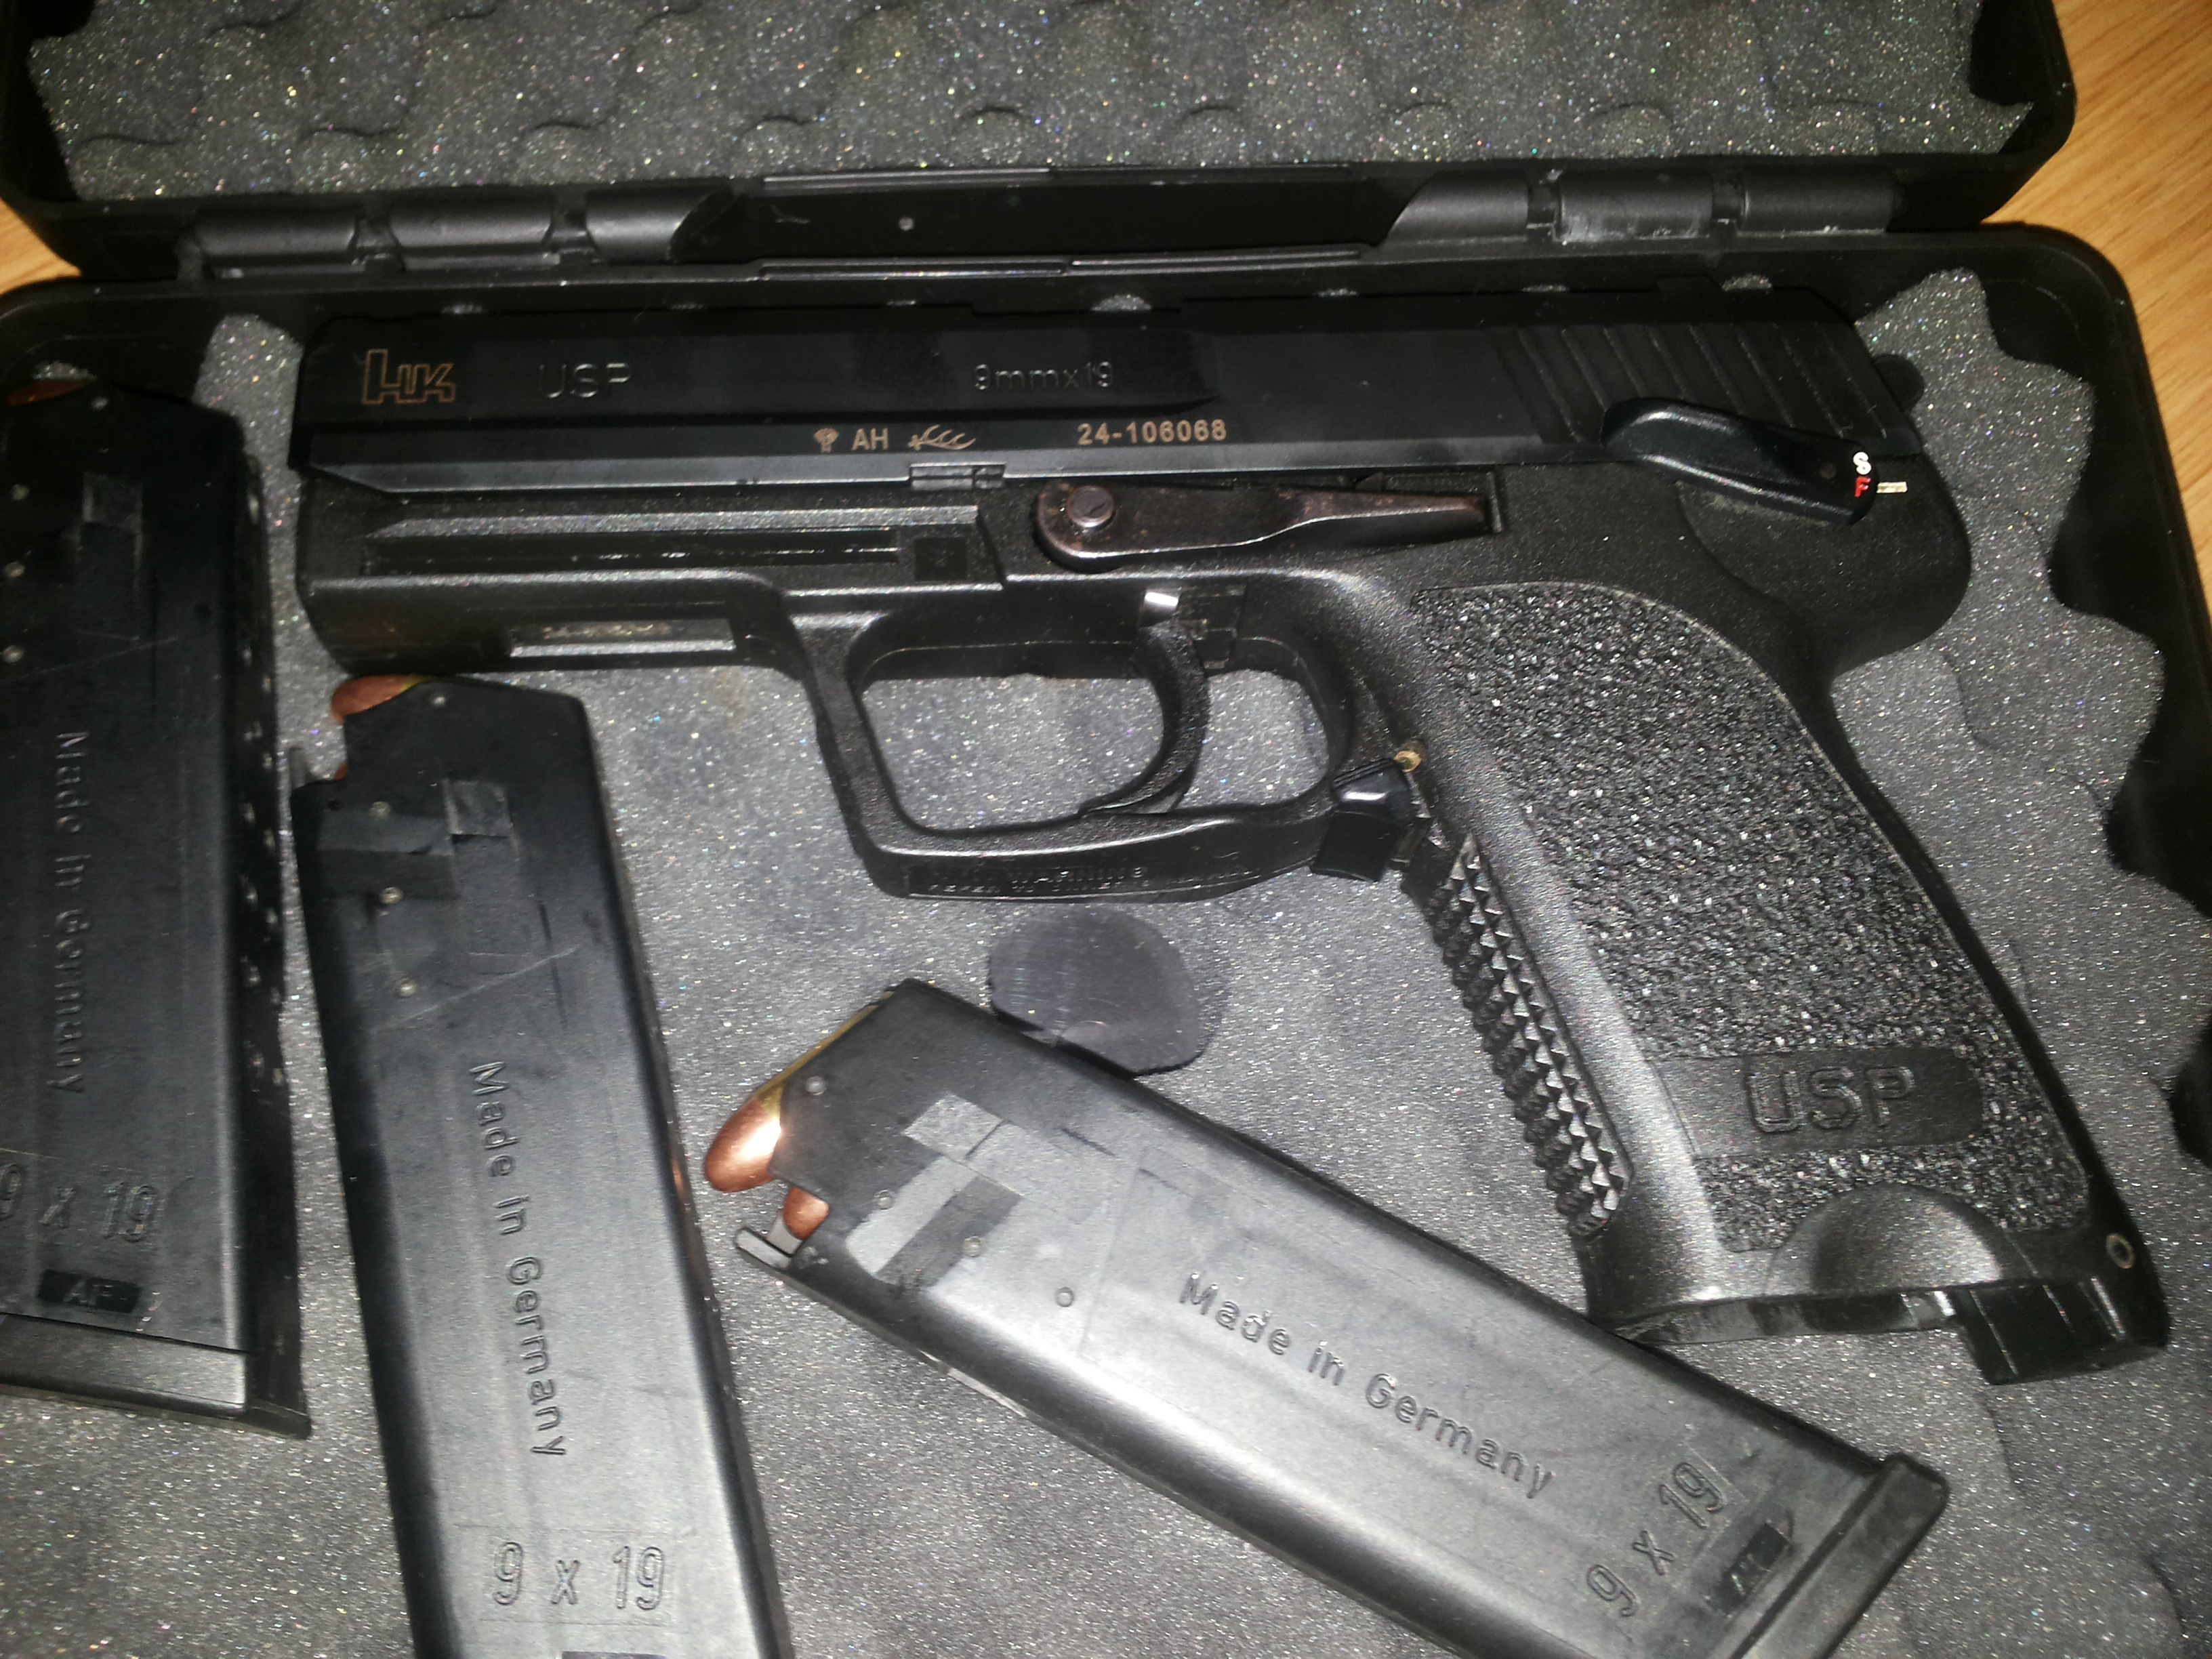 Let's See Your USP's!-20160831_221437.jpg